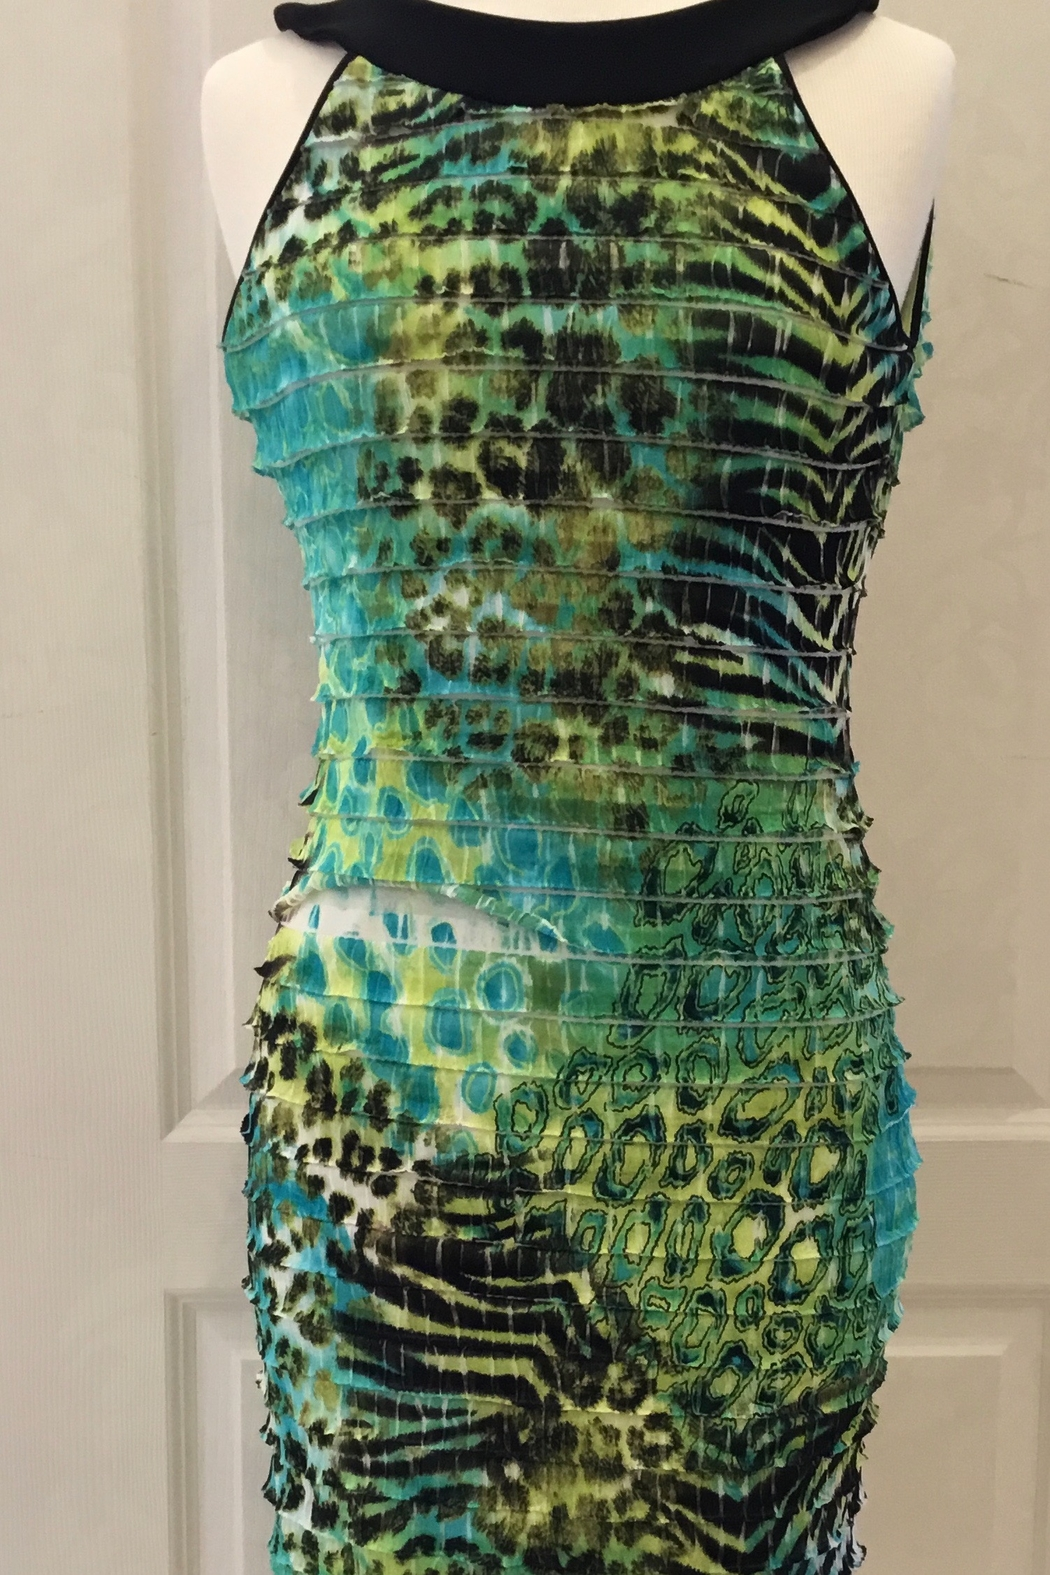 Joseph Ribkoff halter top green, black, turquoise dress - Main Image